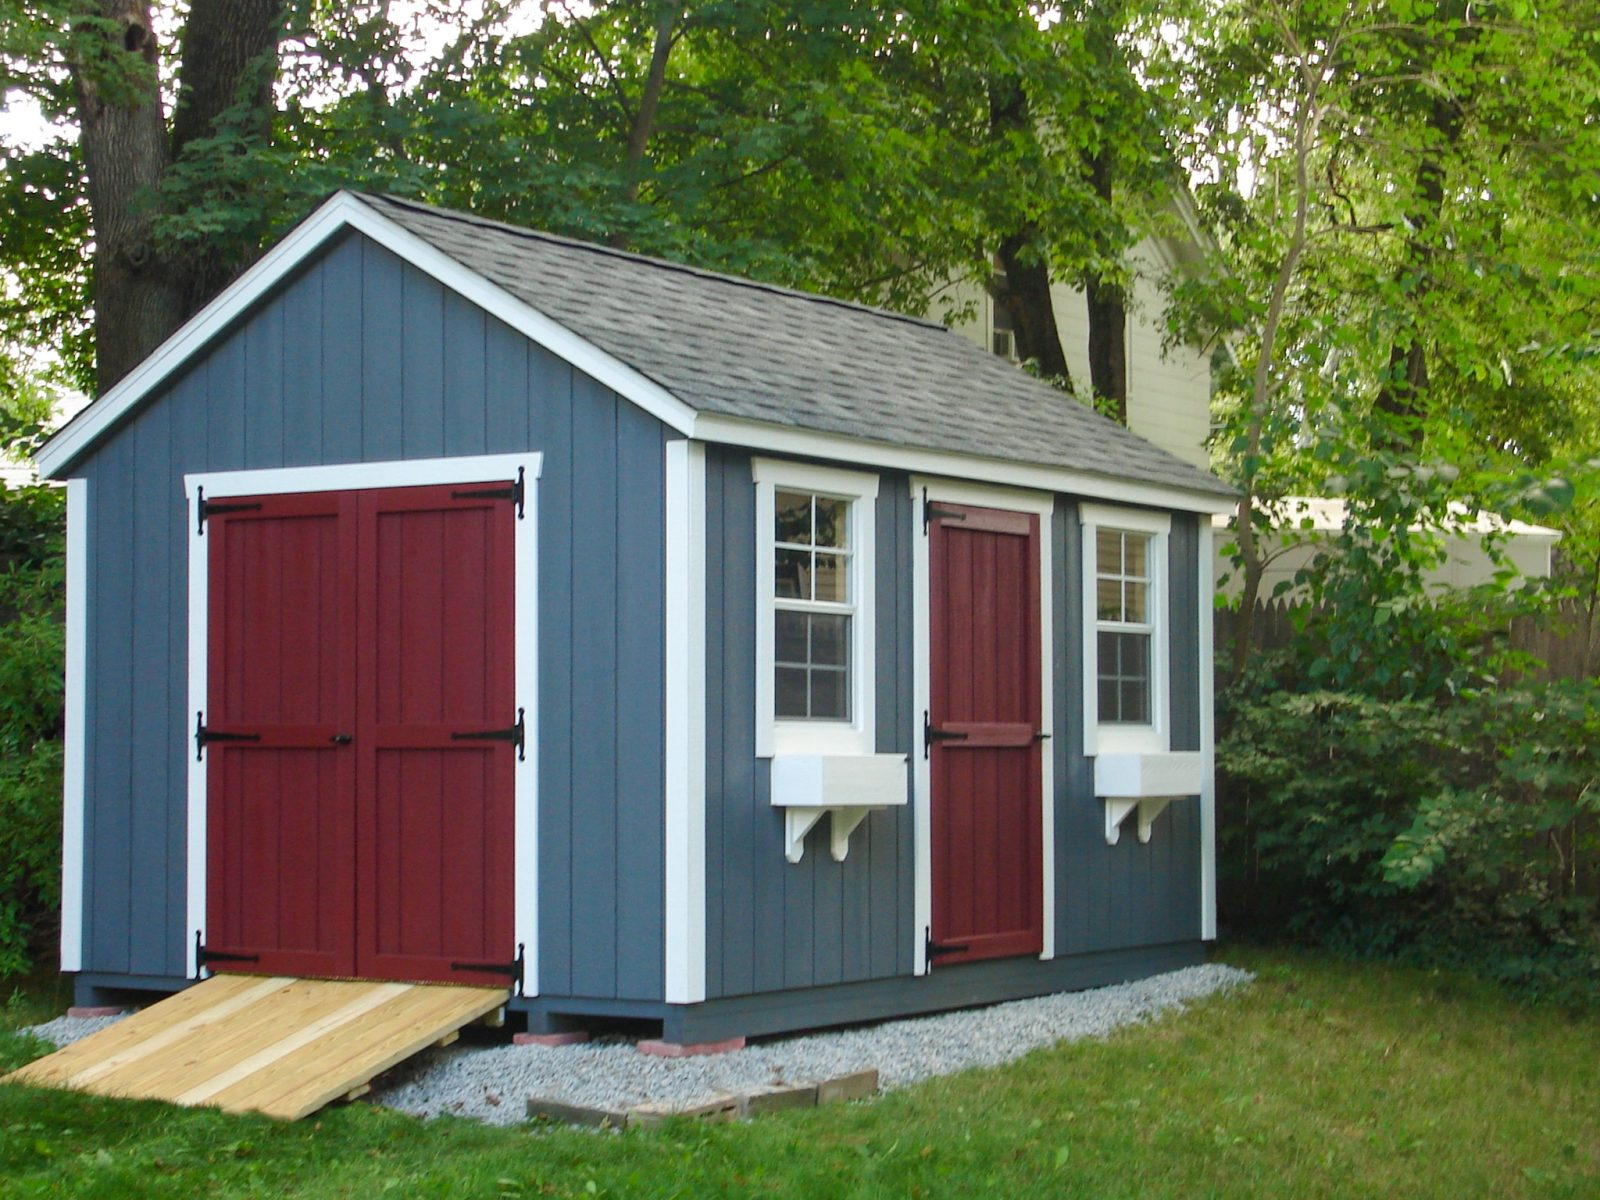 Authentic Traditional Sheds   Portable Storage Buildings ...